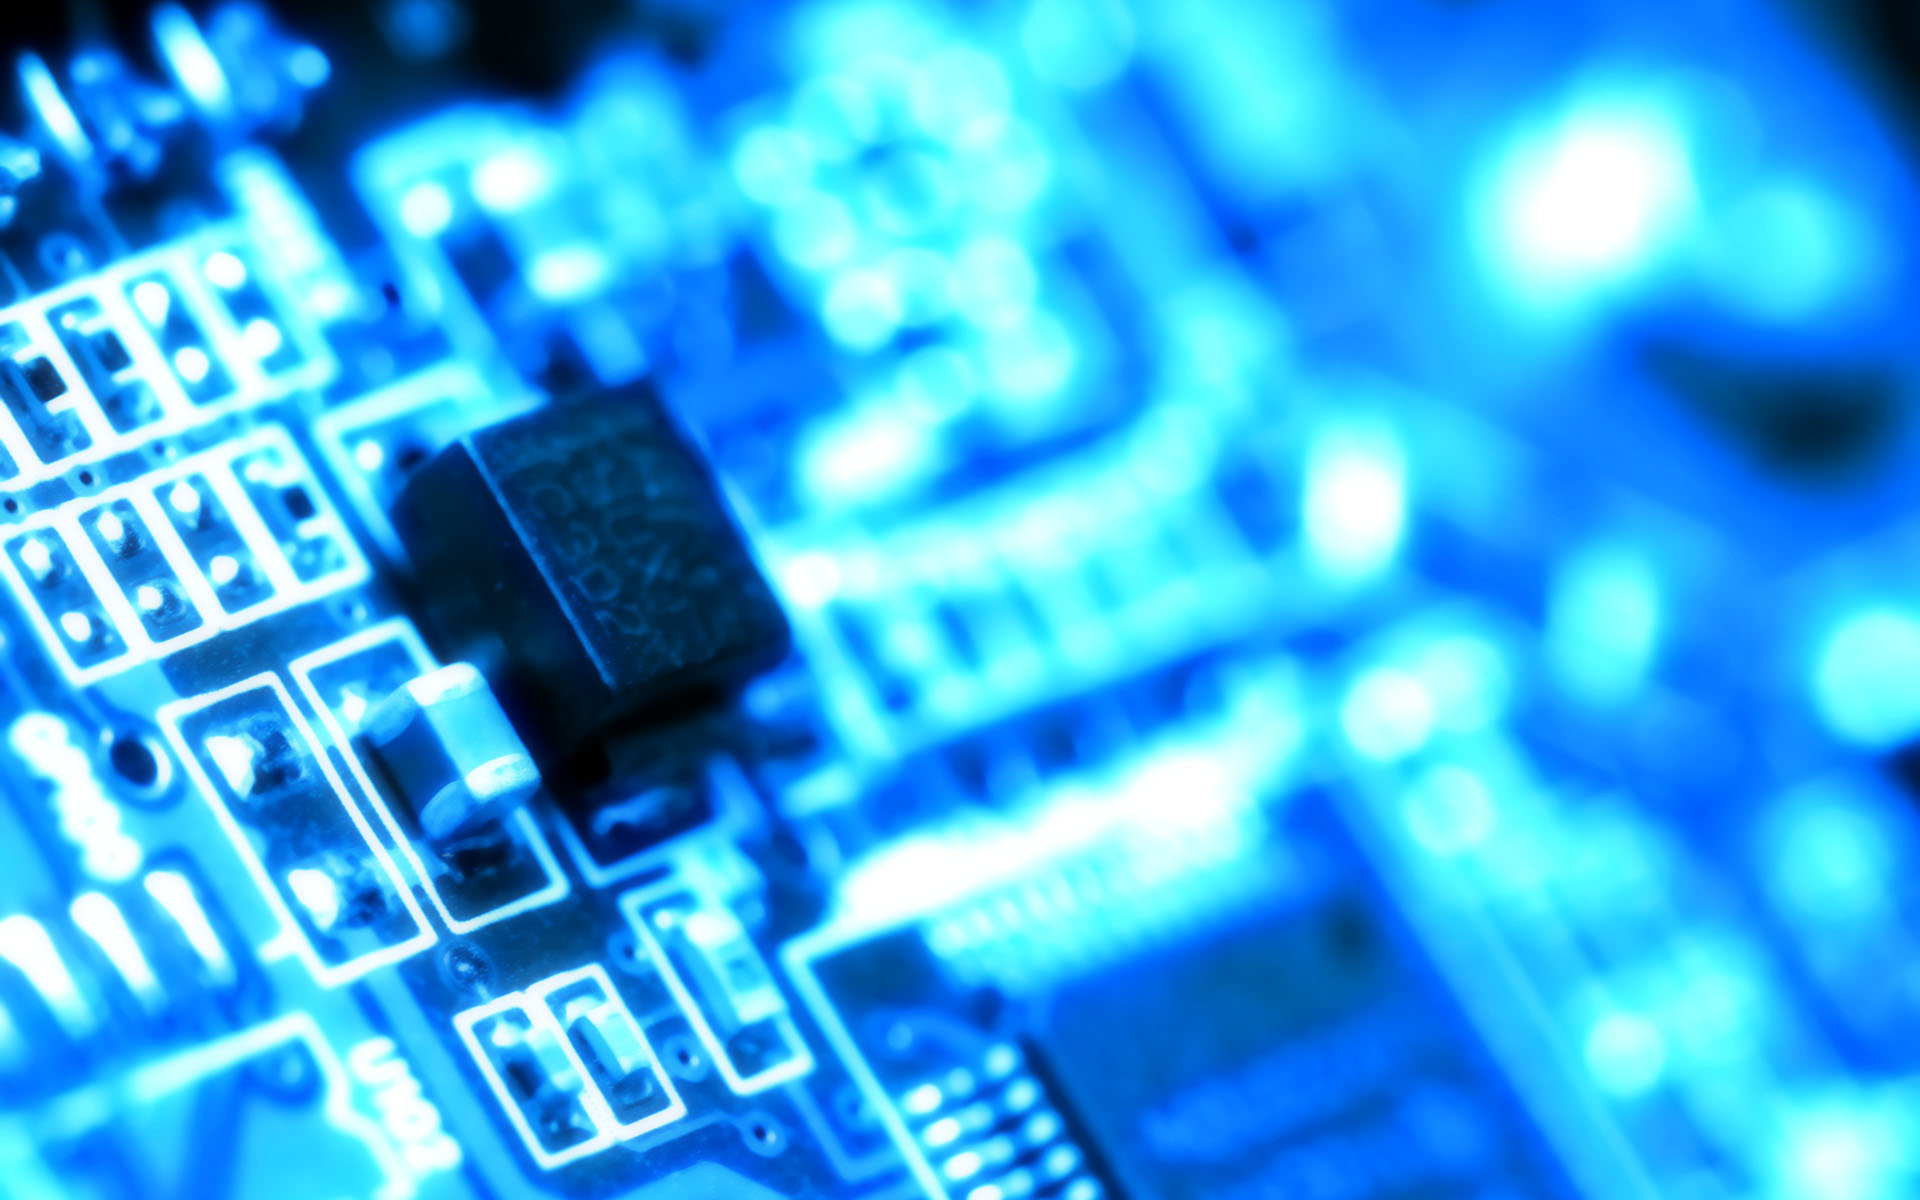 Free Hardware High Quality Wallpaper Id 195311 For Hd 1920x1200 Pc